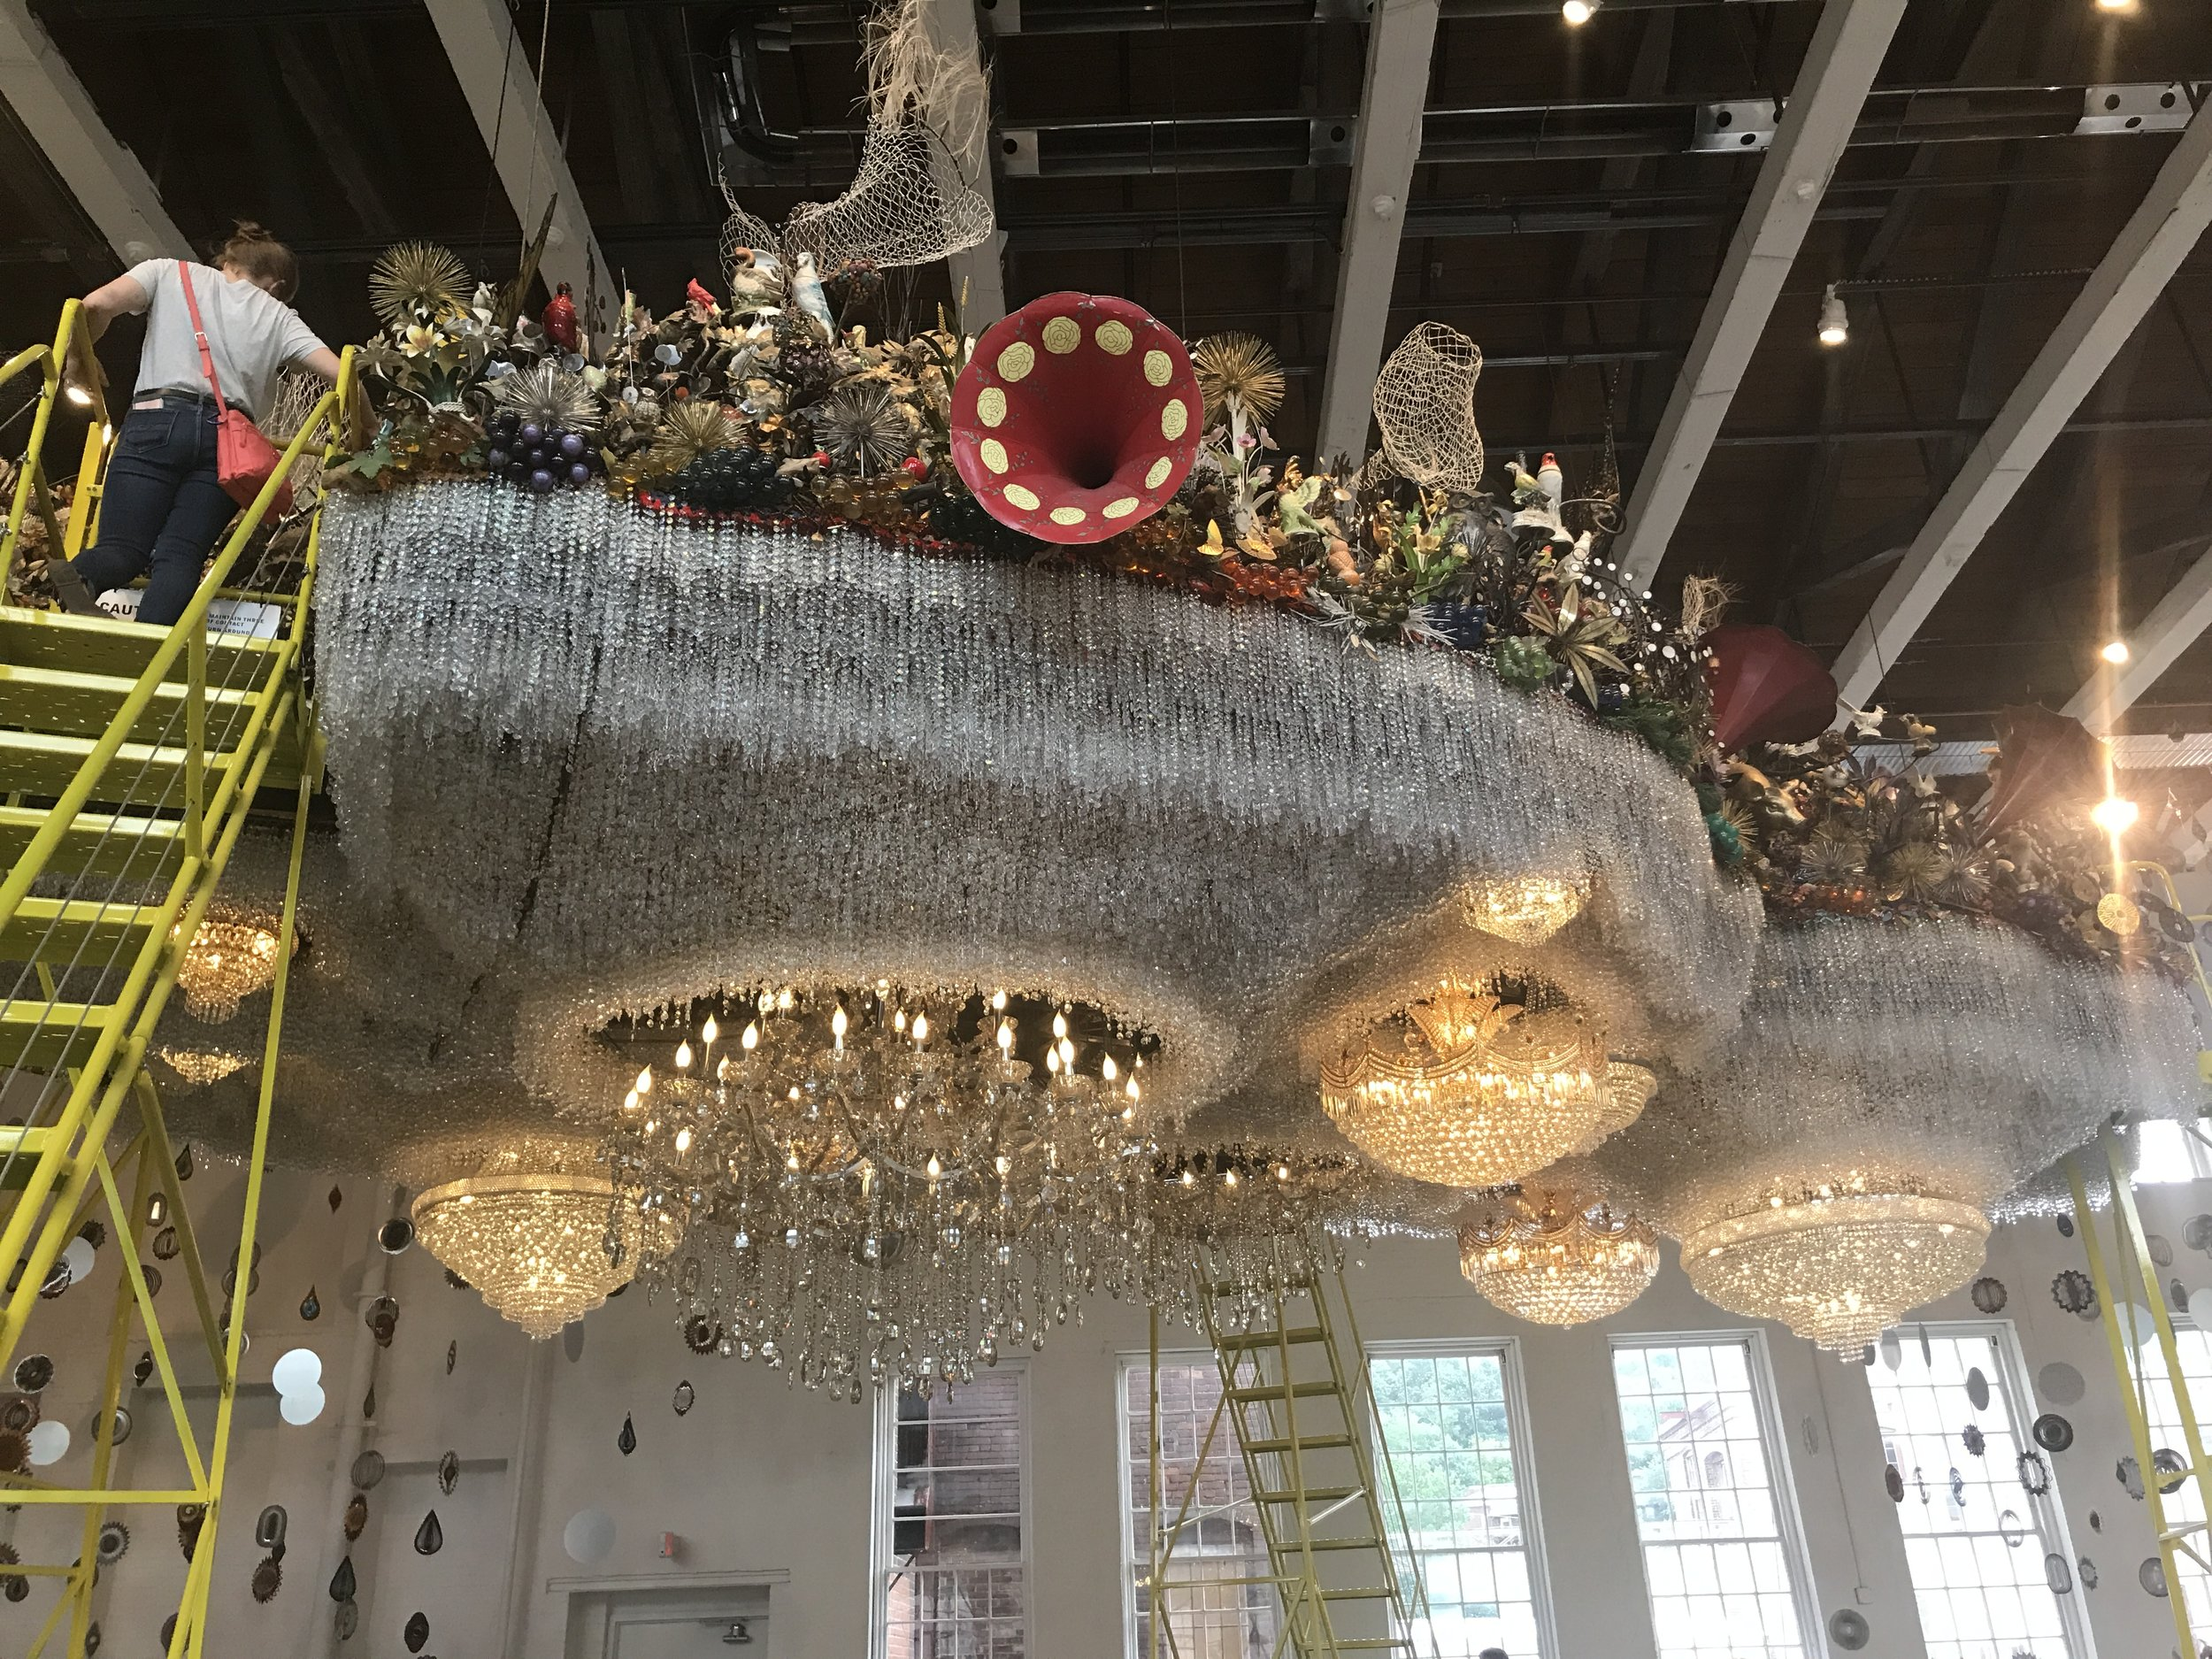 Cloud Installation by Nick Cave